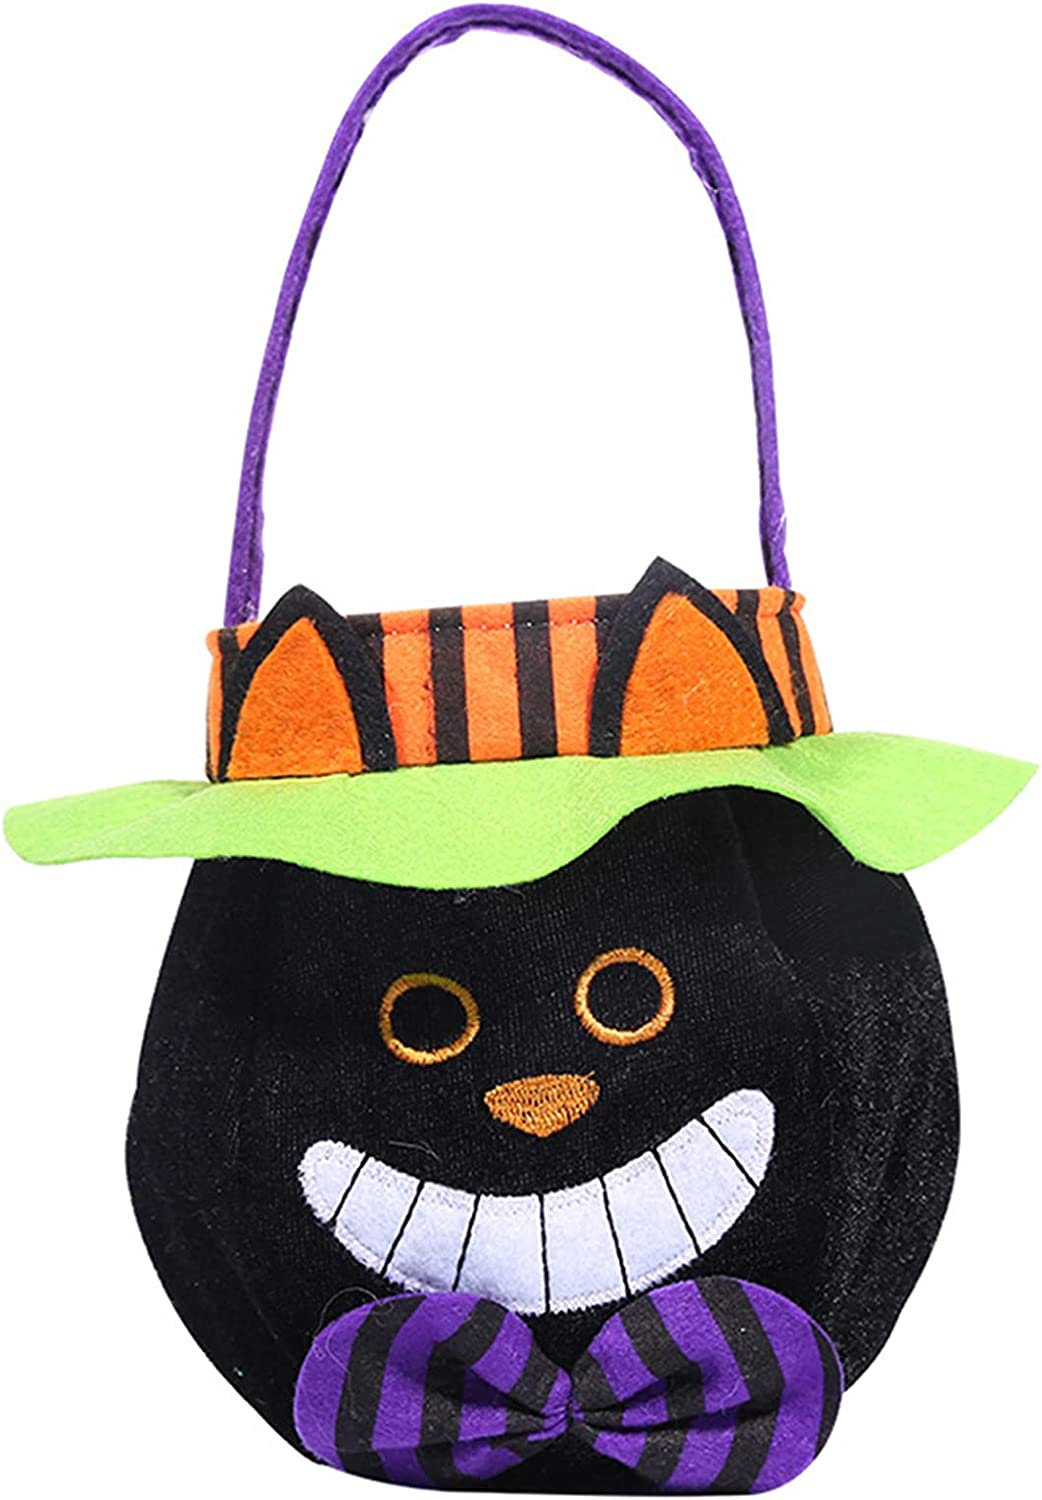 Halloween Candy Pumpkin Bag for Max 51% OFF San Antonio Mall Round Ghos Kids Tote Hooded